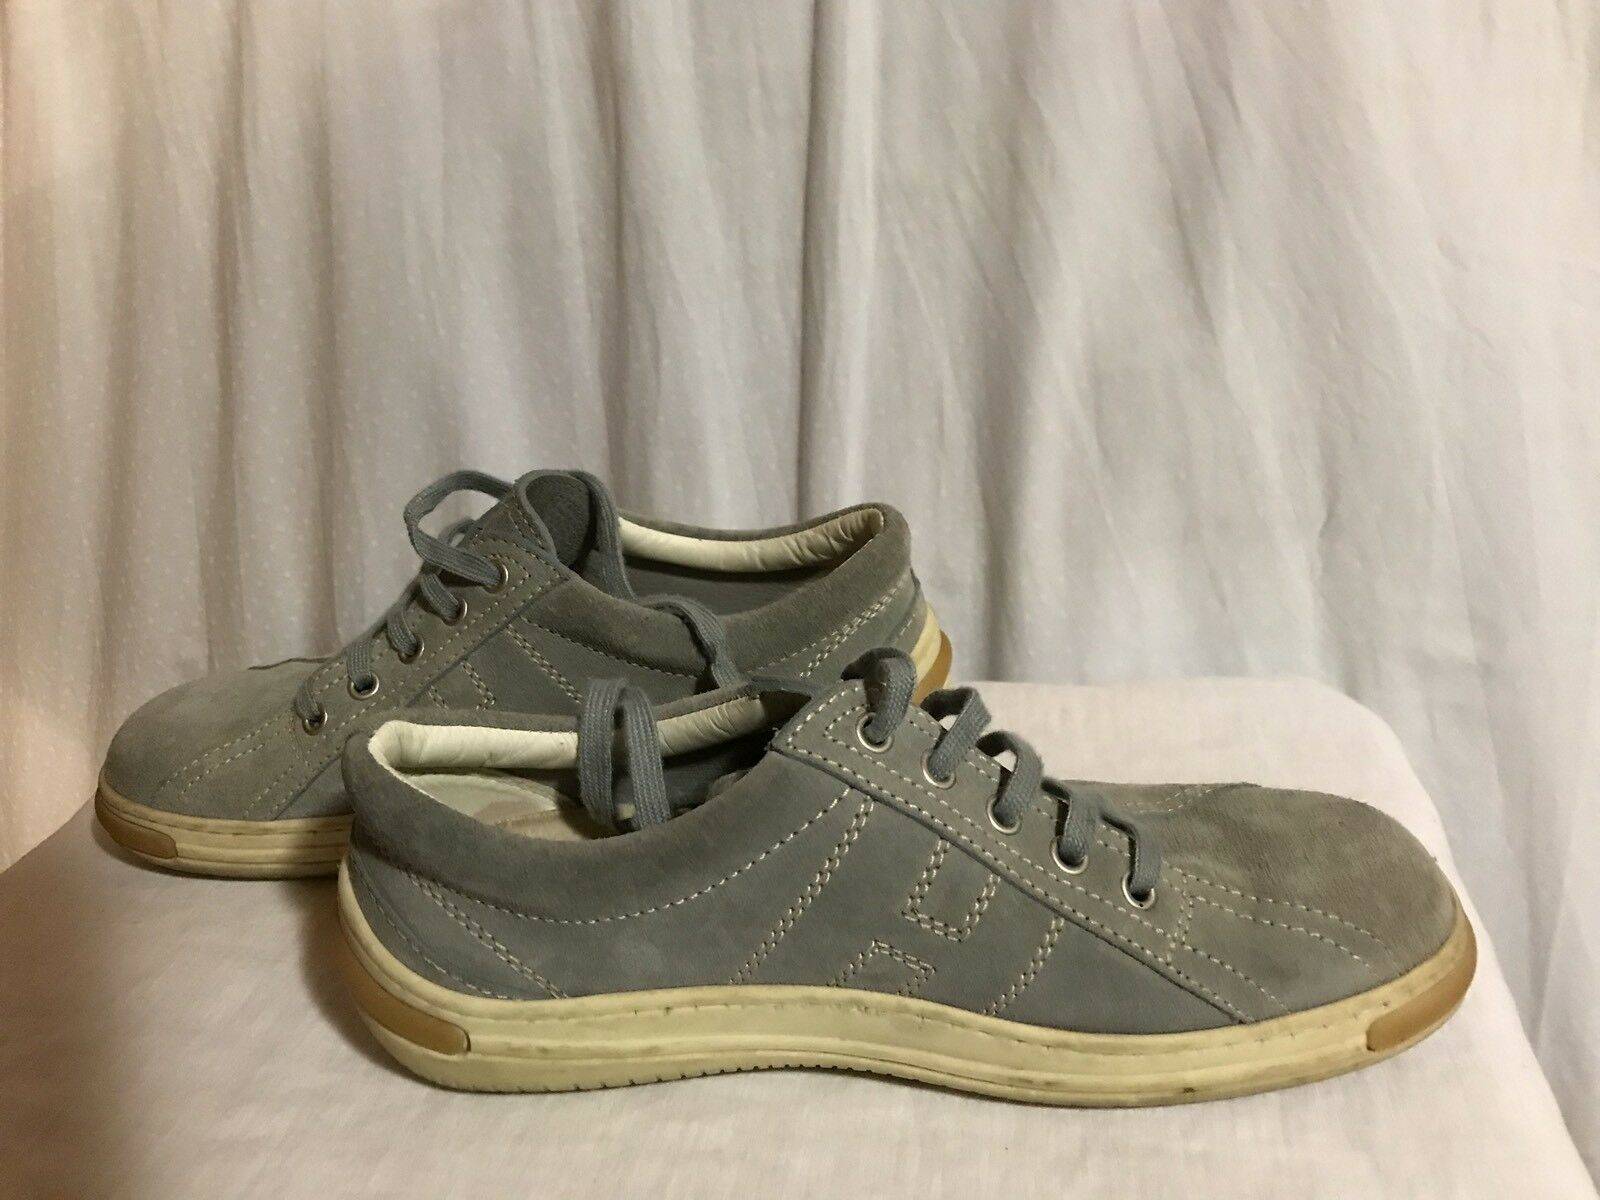 Hogan Women Grey shoes size 7 made in .